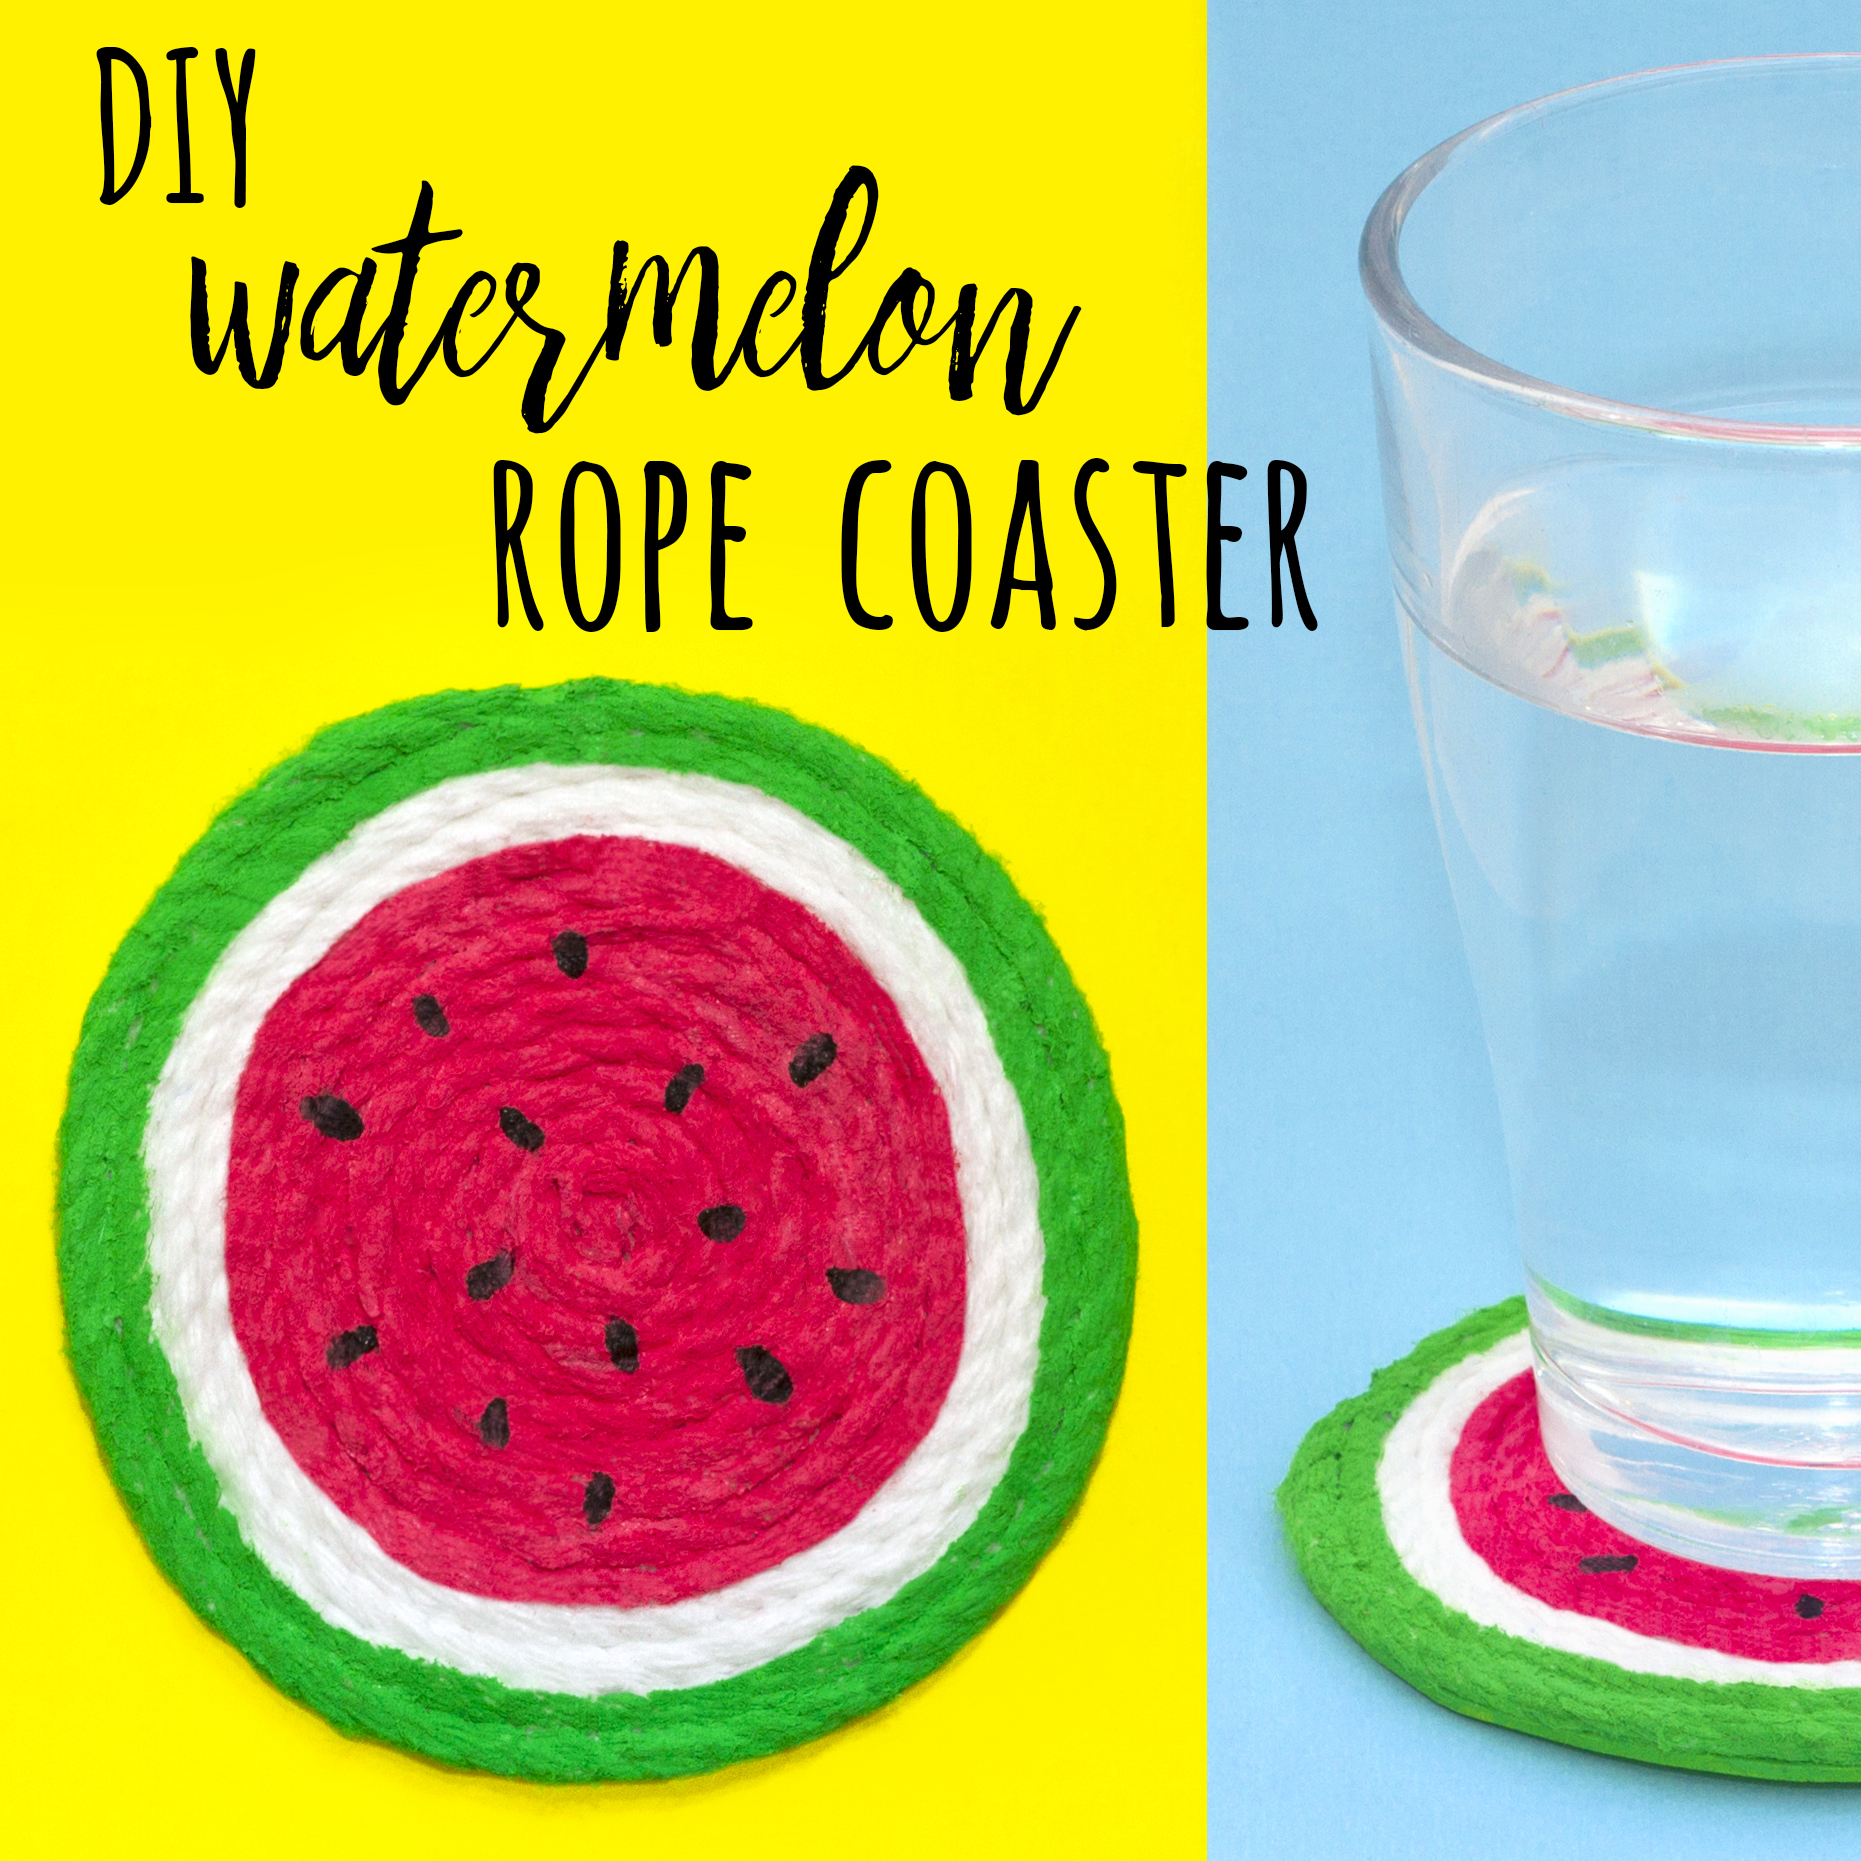 Make a watermelon coaster out of rope with this simple tutorial. You could even craft a whole set of different fruit coasters for a great addition to the home!